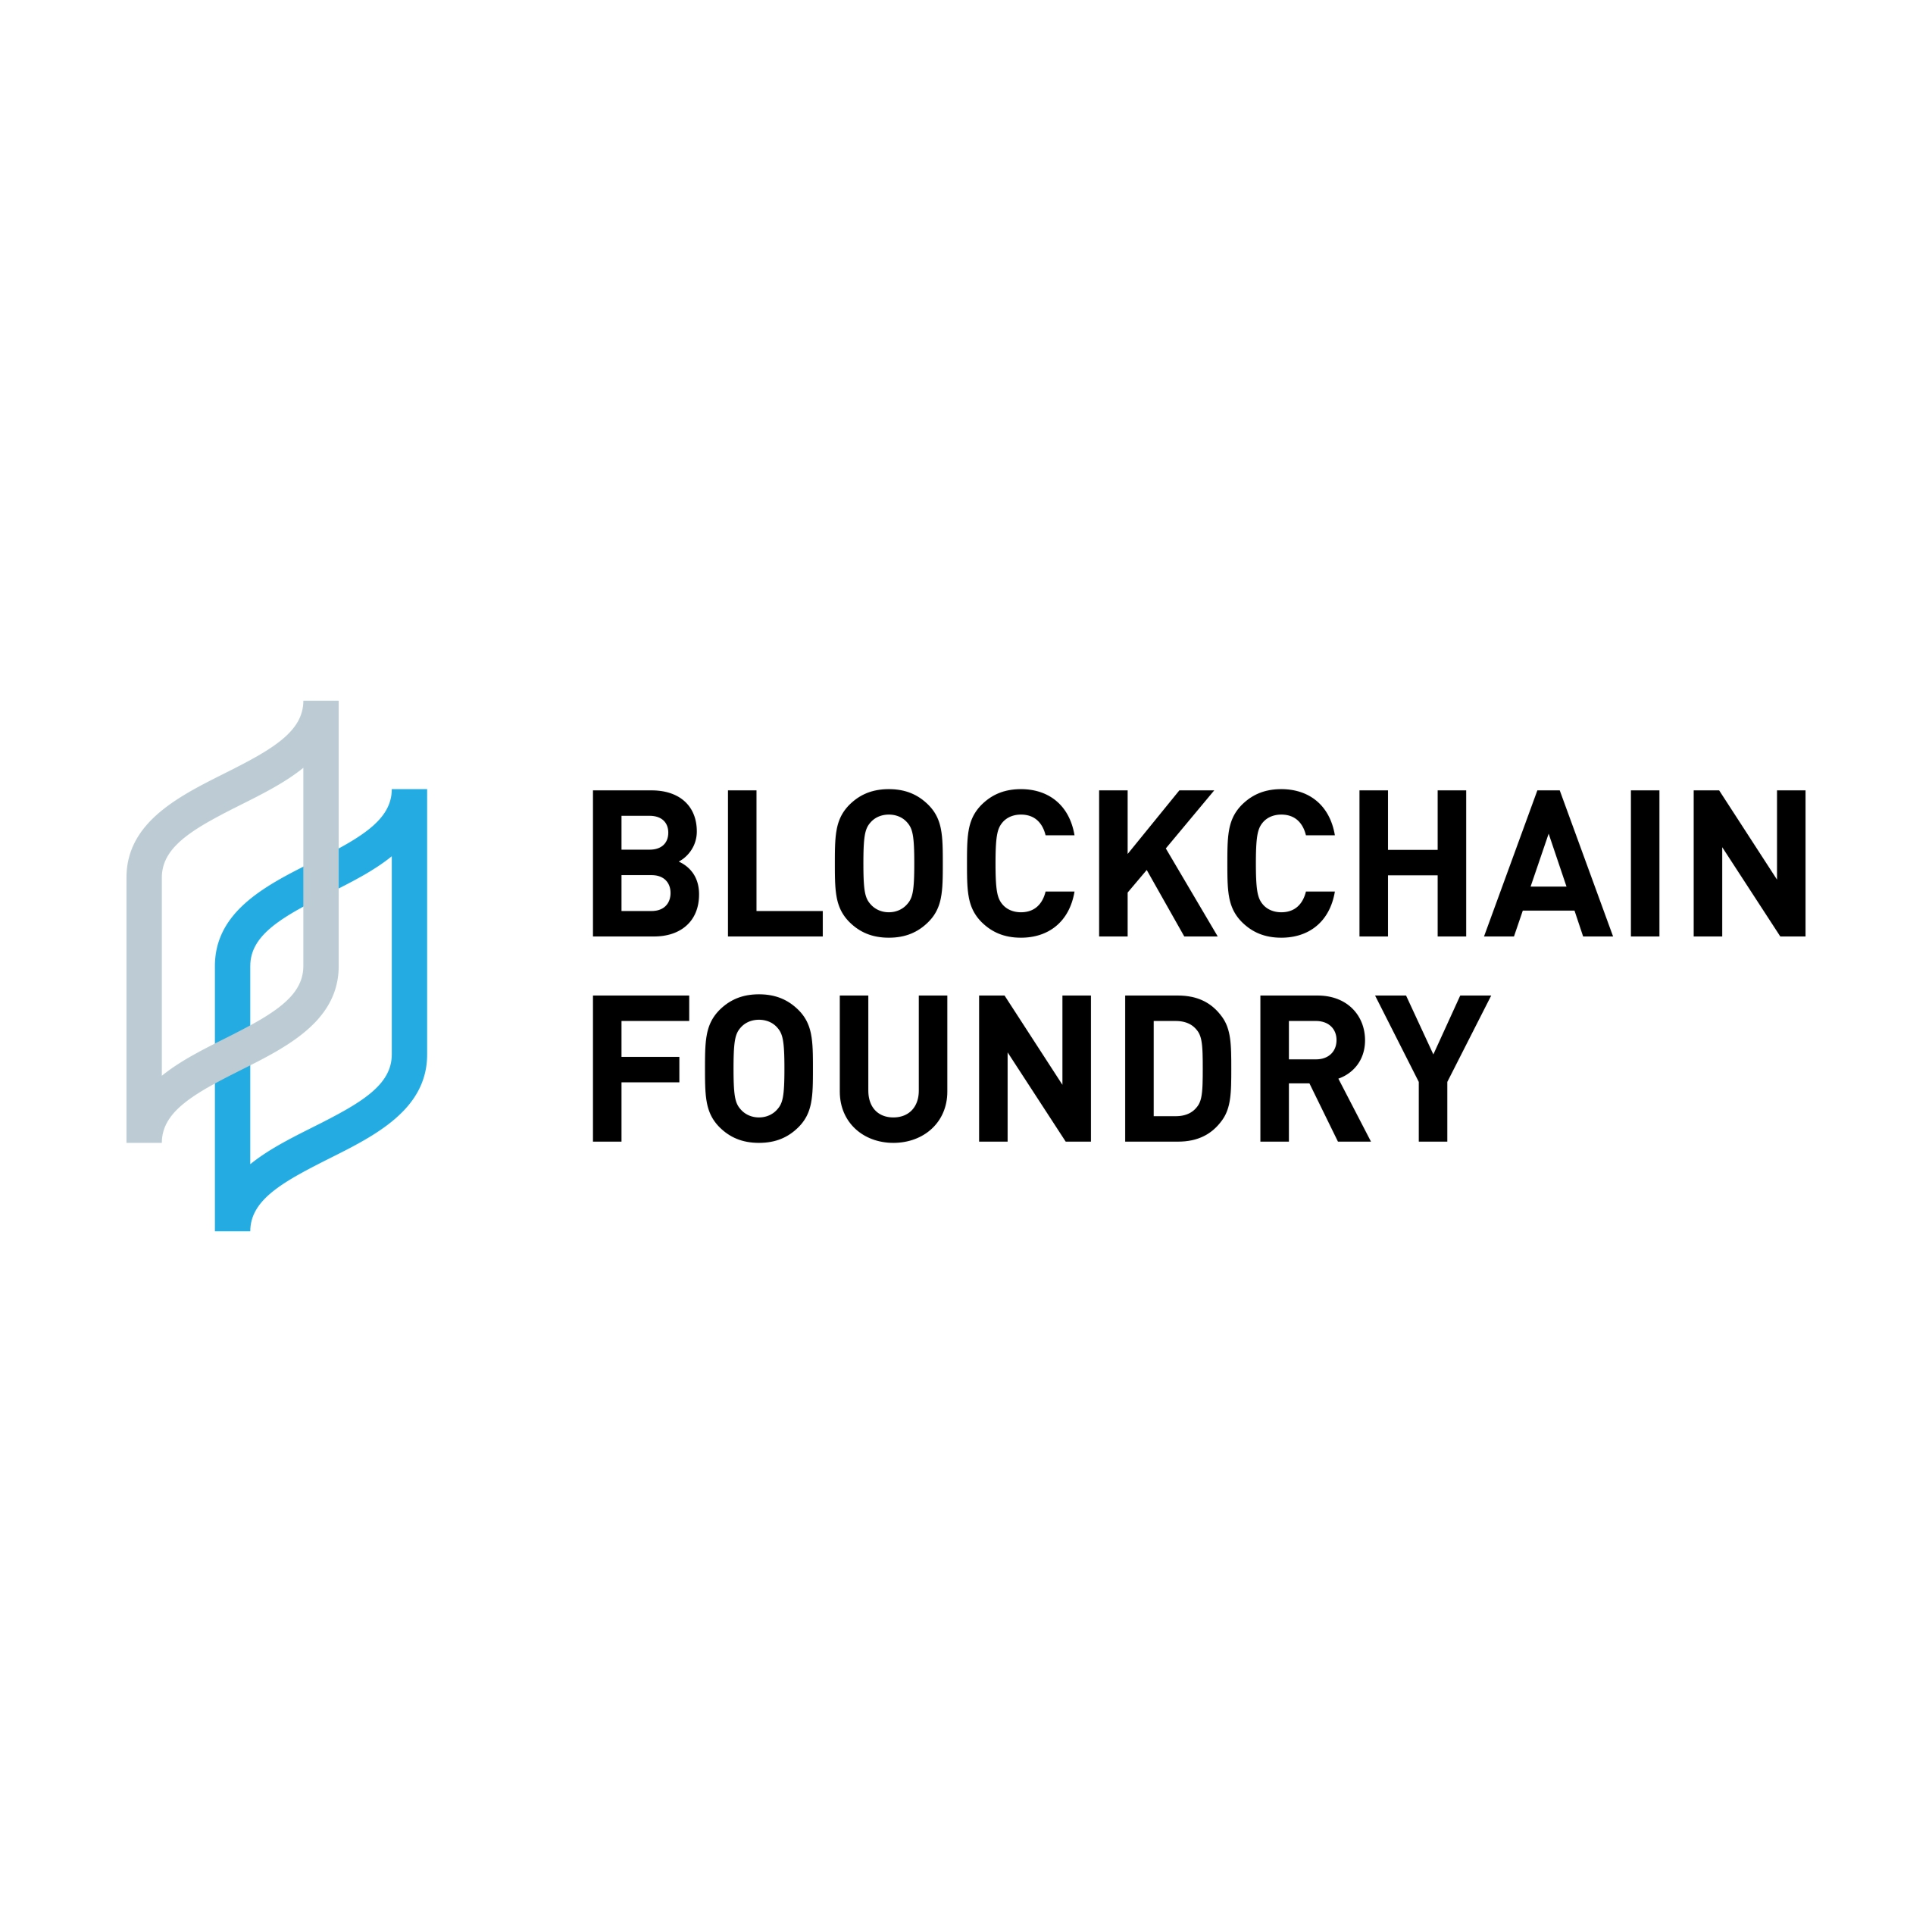 Early Warning Disclosure: Acquisition of Securities of Blockchain Foundry